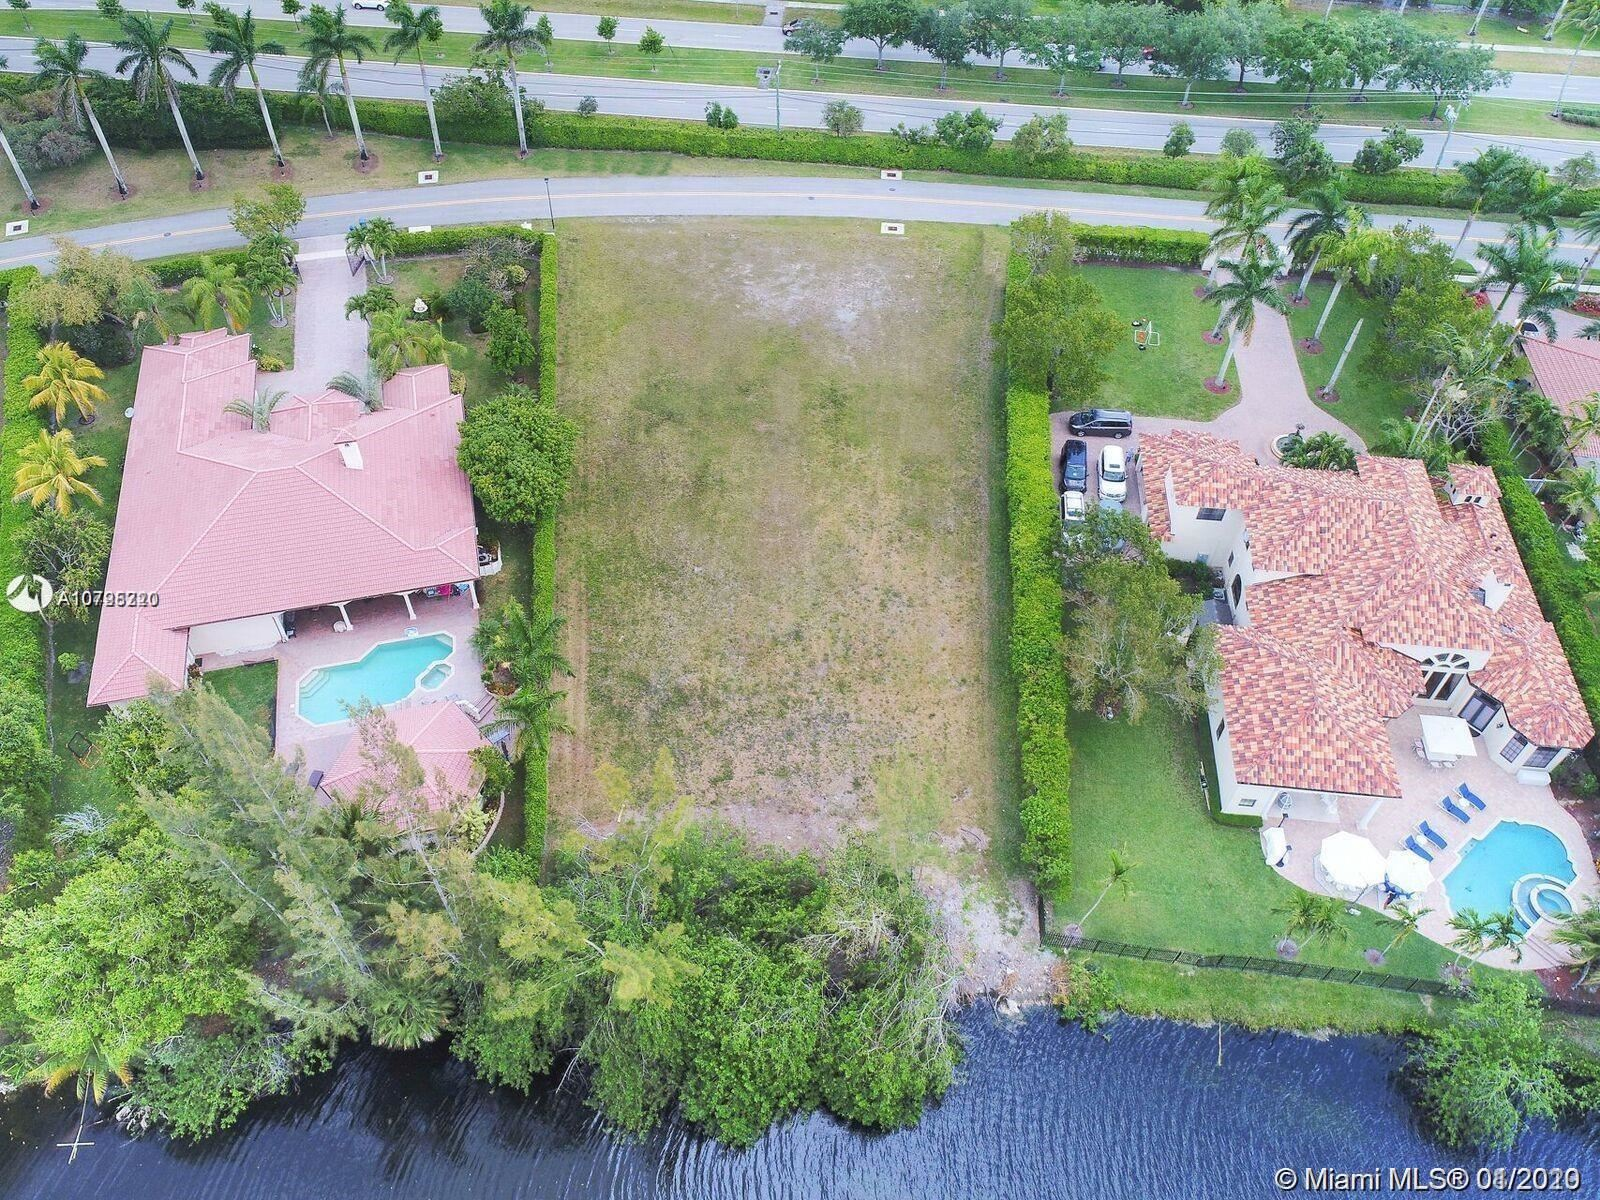 Photo 10 of Listing MLS a10795220 in 441 Ranch Rd Weston FL 33326